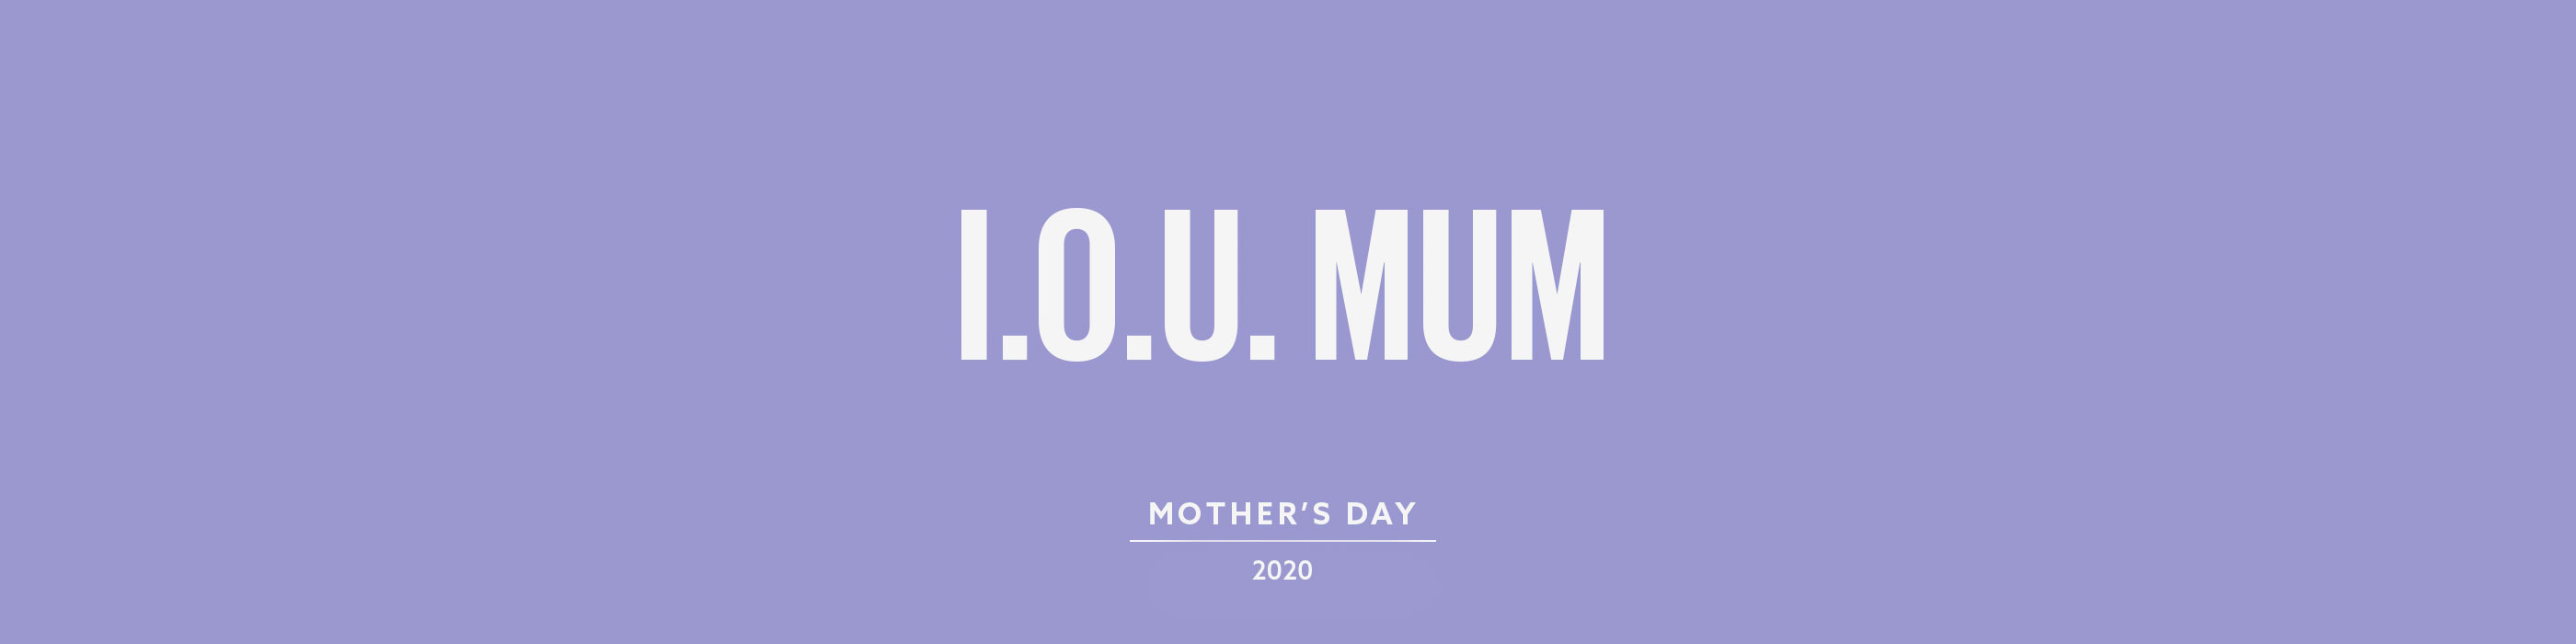 mother's day uk 2020 - photo #34